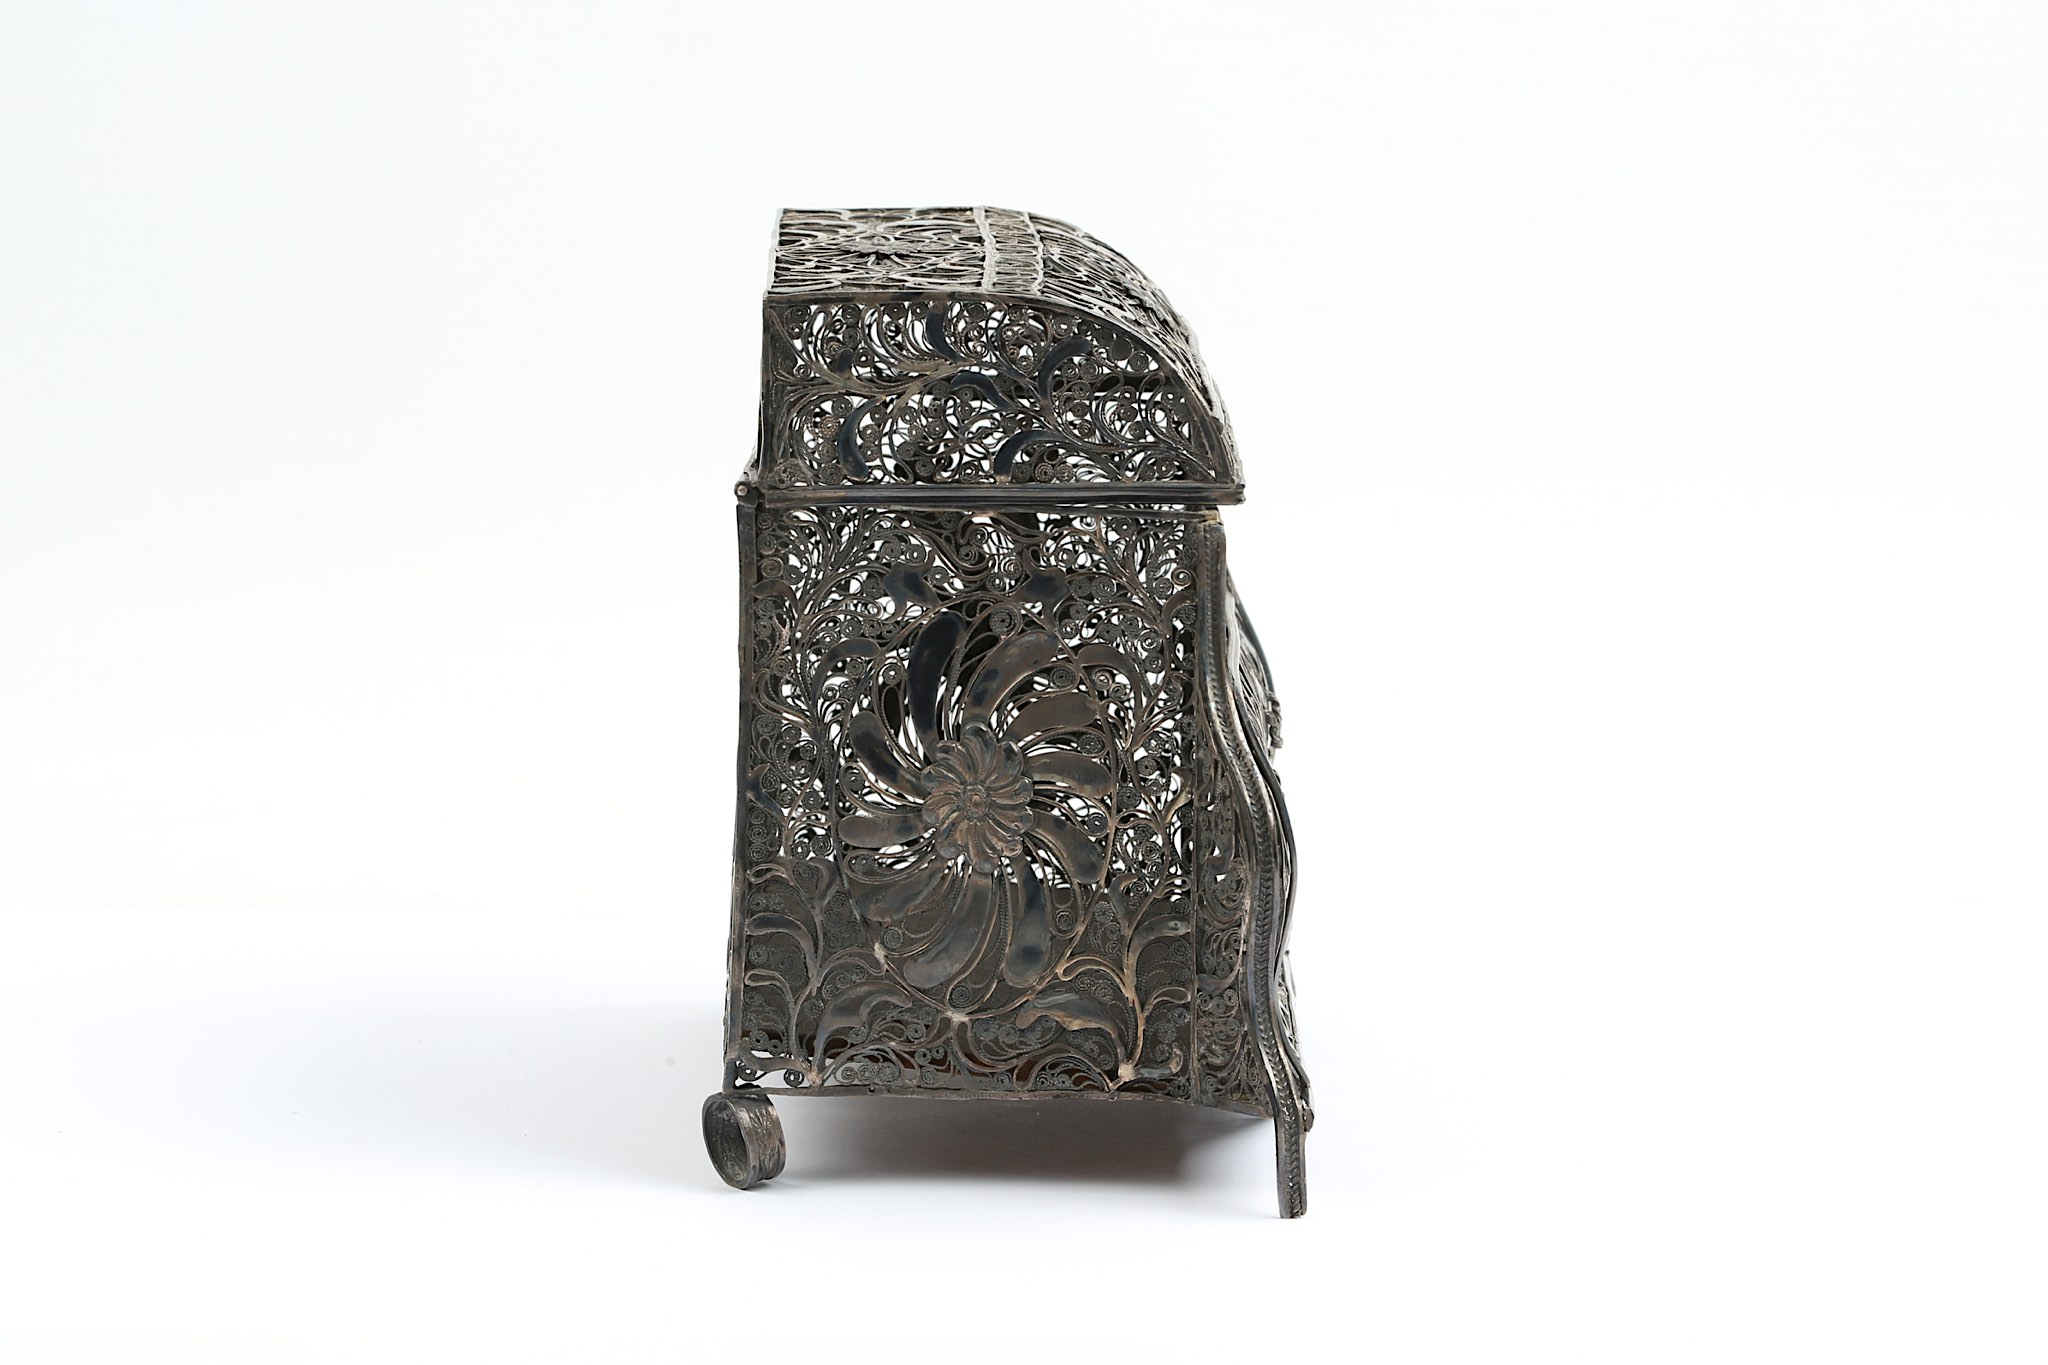 Lot 180 - A LATE 18TH / 19TH CENTURY INDO-PORTUGUESE SILVER FILIGREE CASKET PROBABLY GOA modelled as a bombe